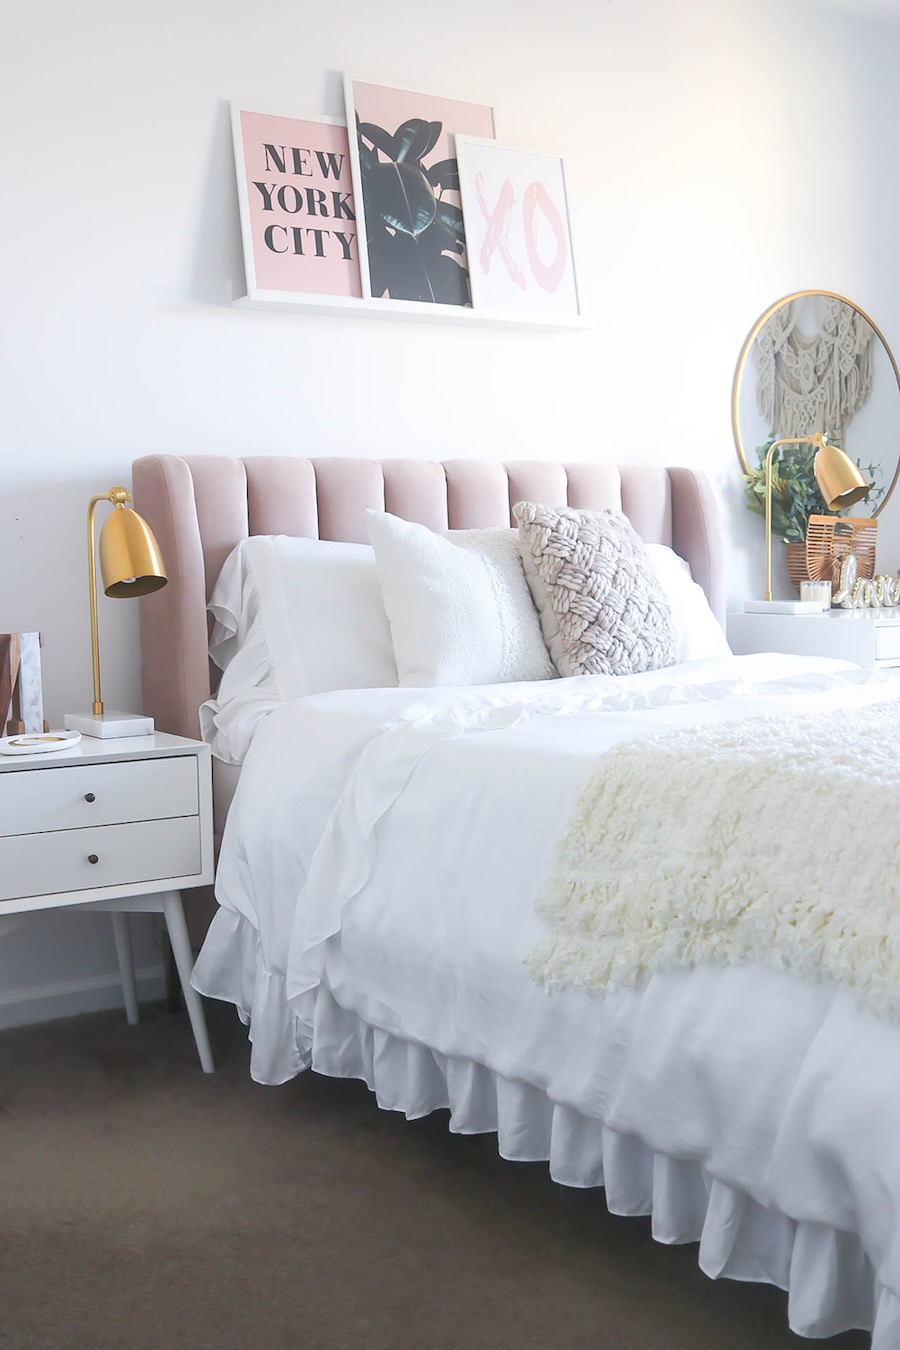 Blush headboard via moneycanbuylipstick